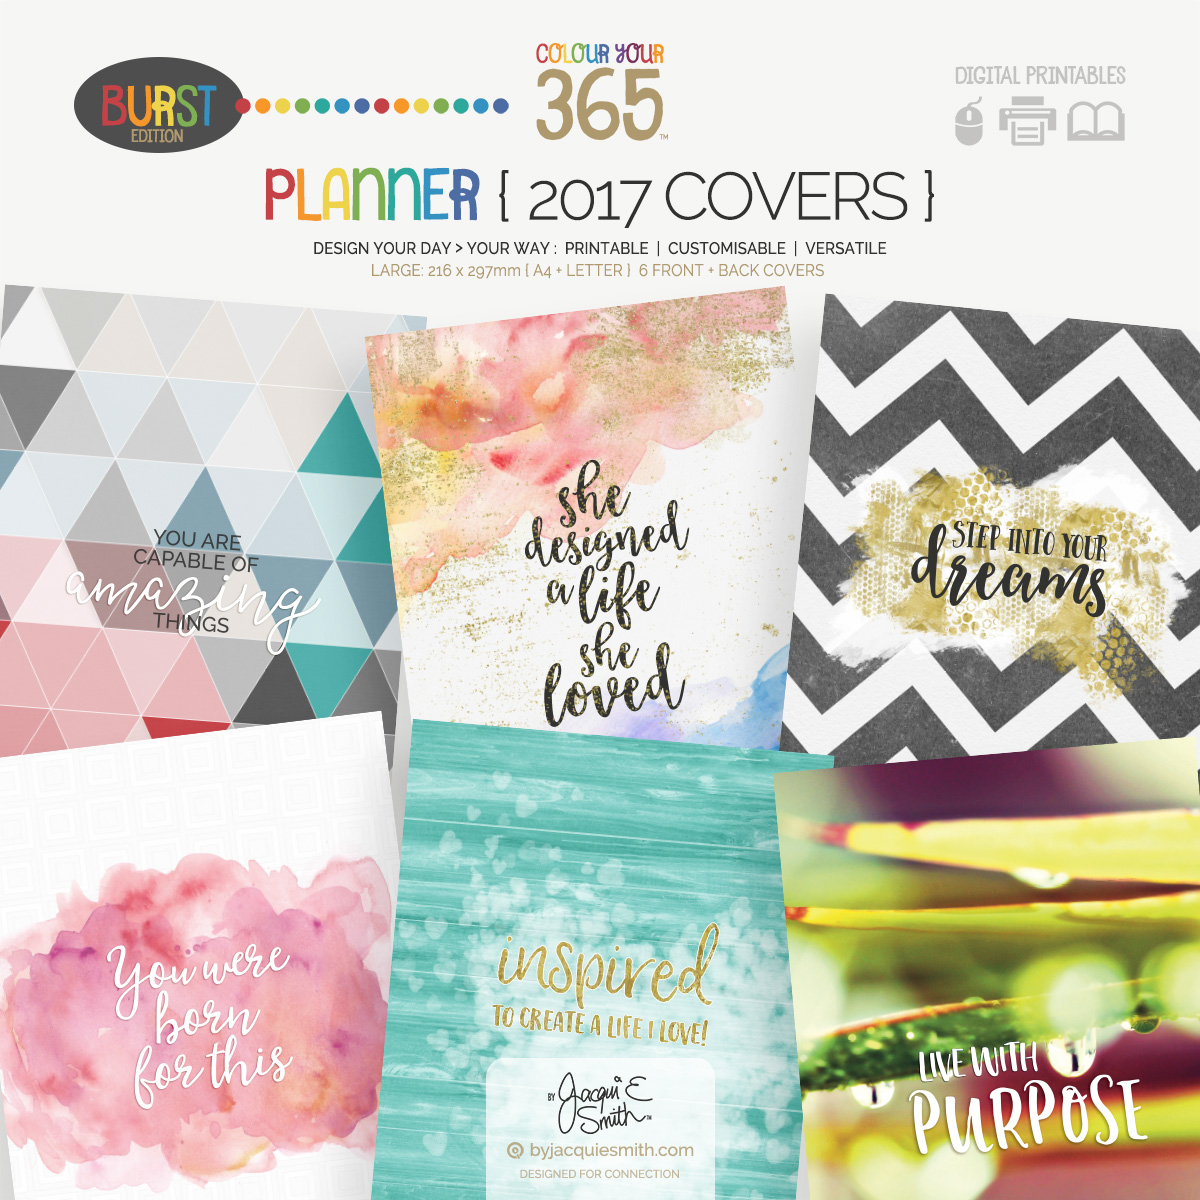 2017 Colour Your 365 Burst Edition printable planner Covers at byjacquiesmith.com